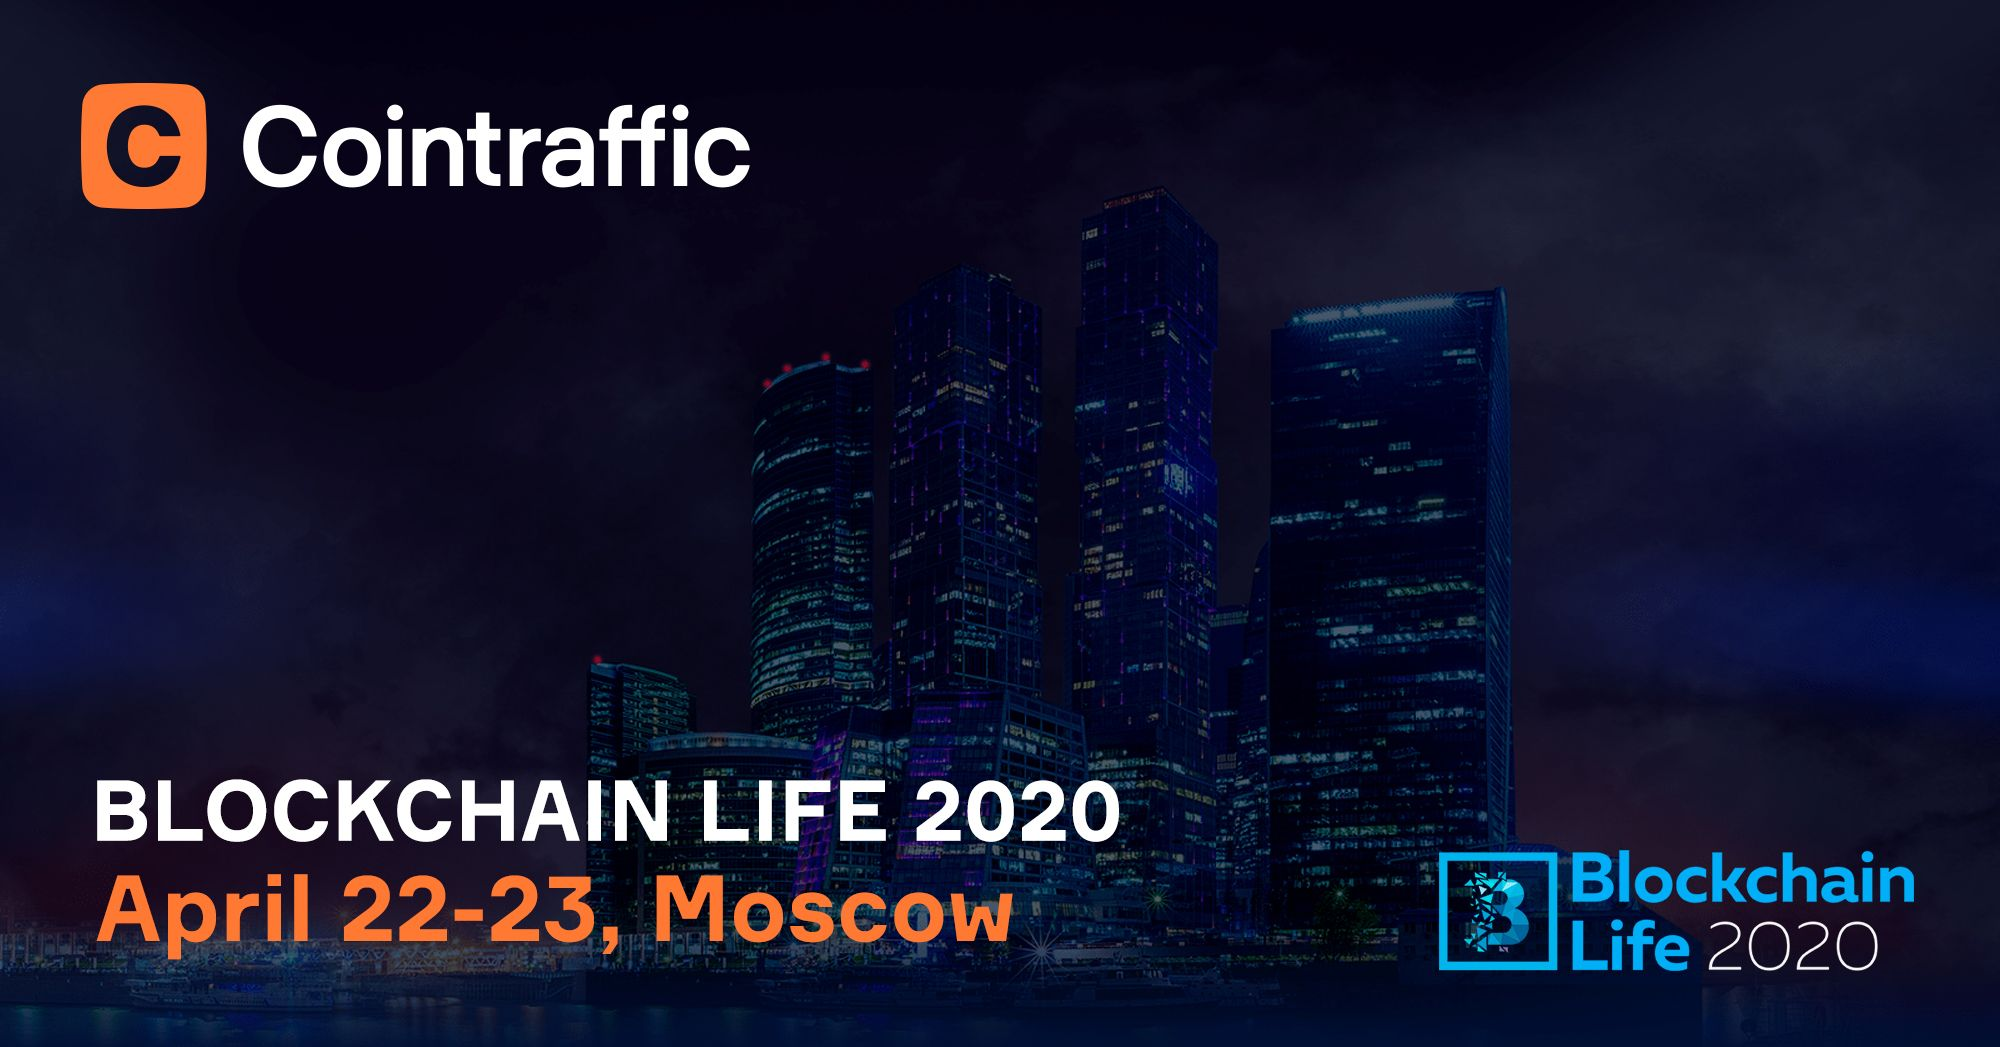 Blockchain Life 2020 Will Bring Industry Leaders, Government, and Community Together